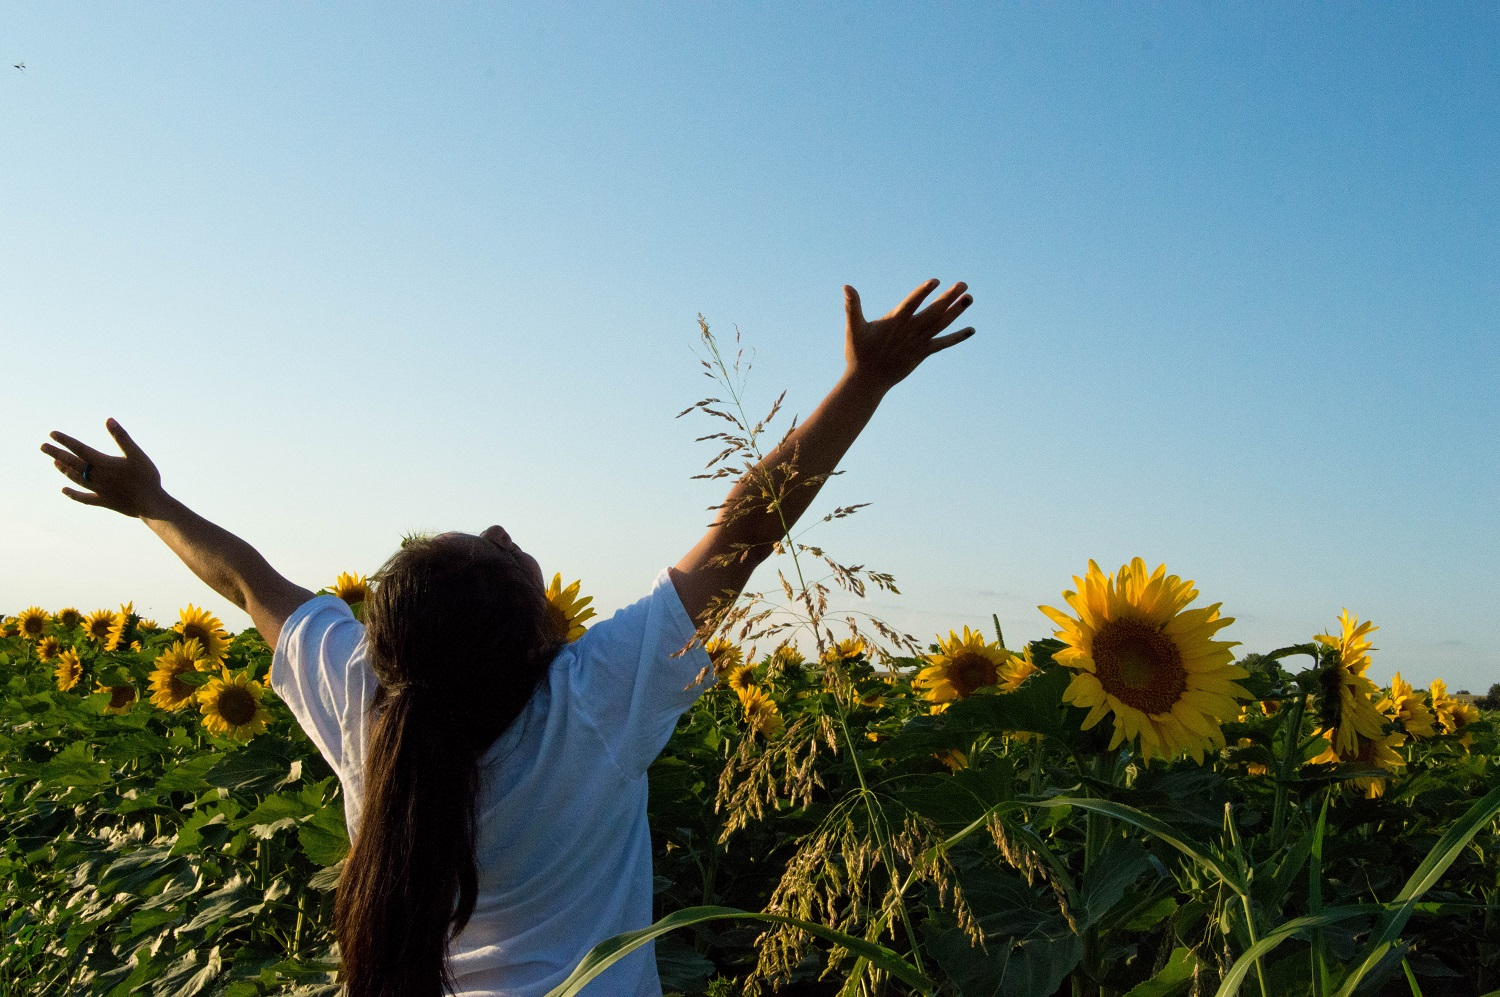 In a spirit of freedom and joy, Alyssa Underwood lifts her arms and face to the sun.  Photo by Ginny Underwood